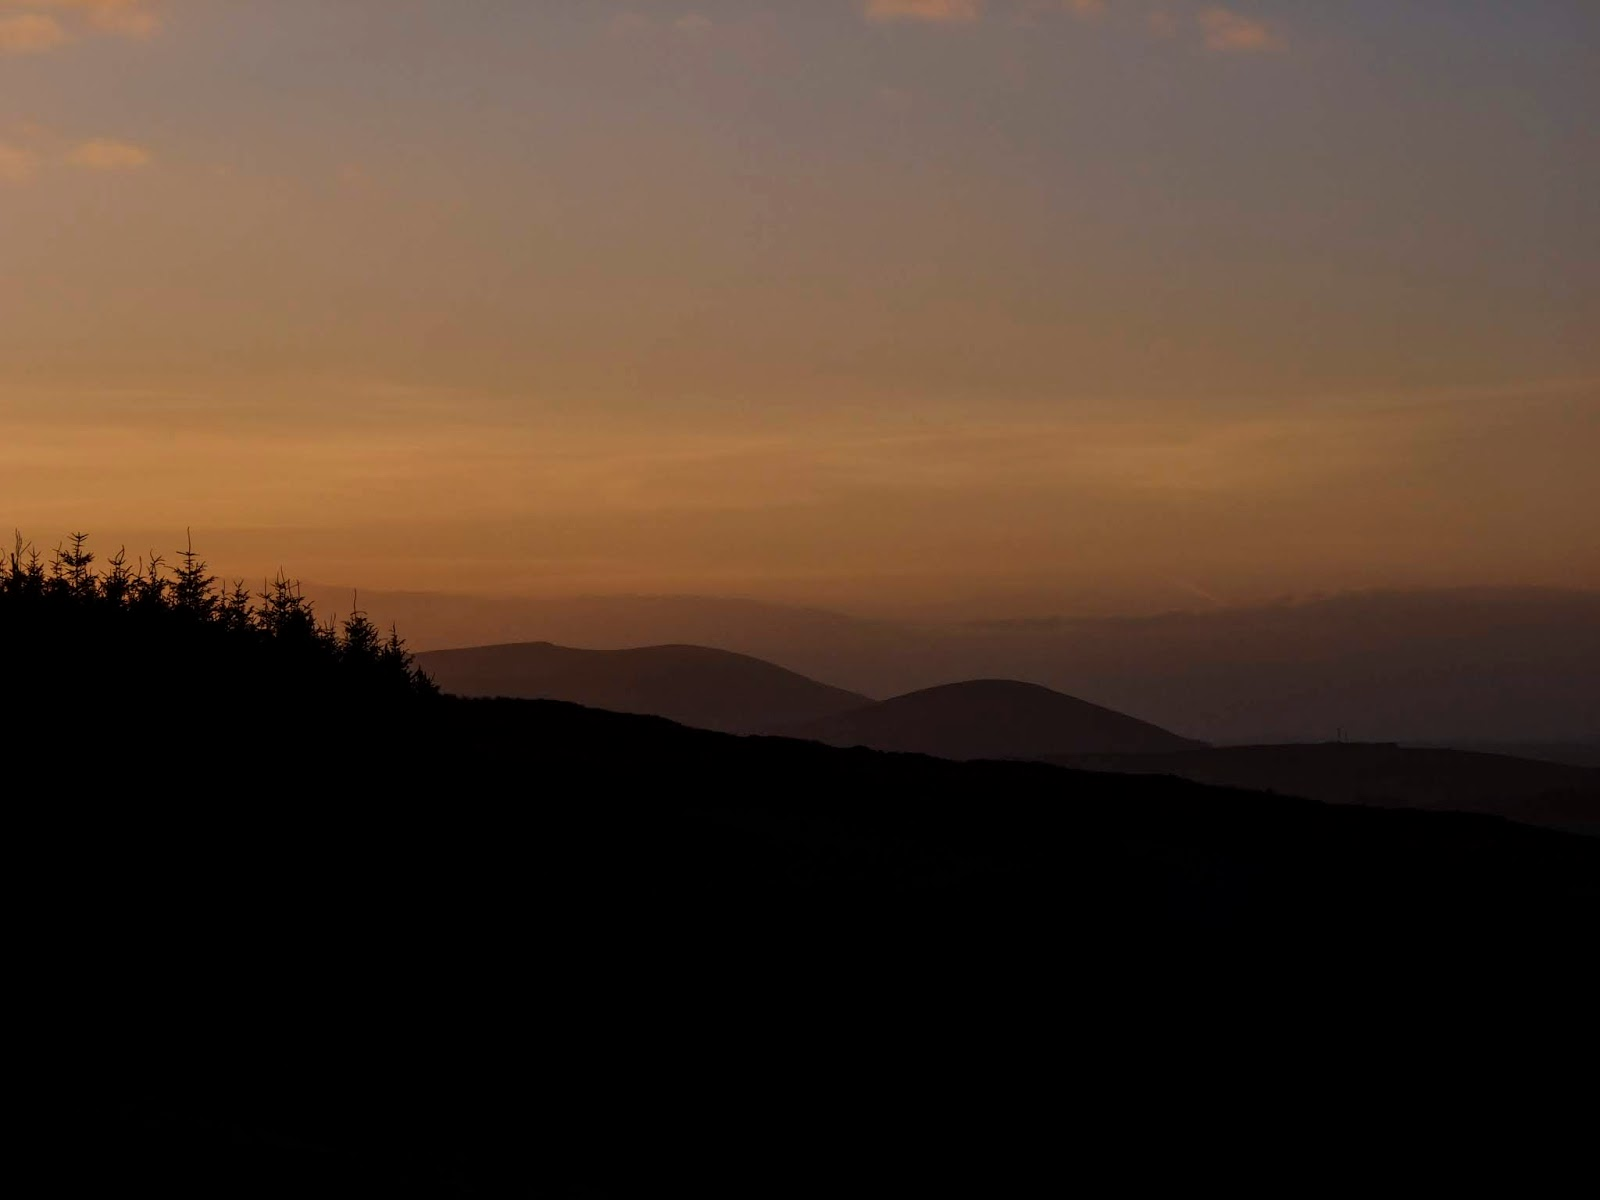 A forest and mountain landscape at sunset in North Cork.